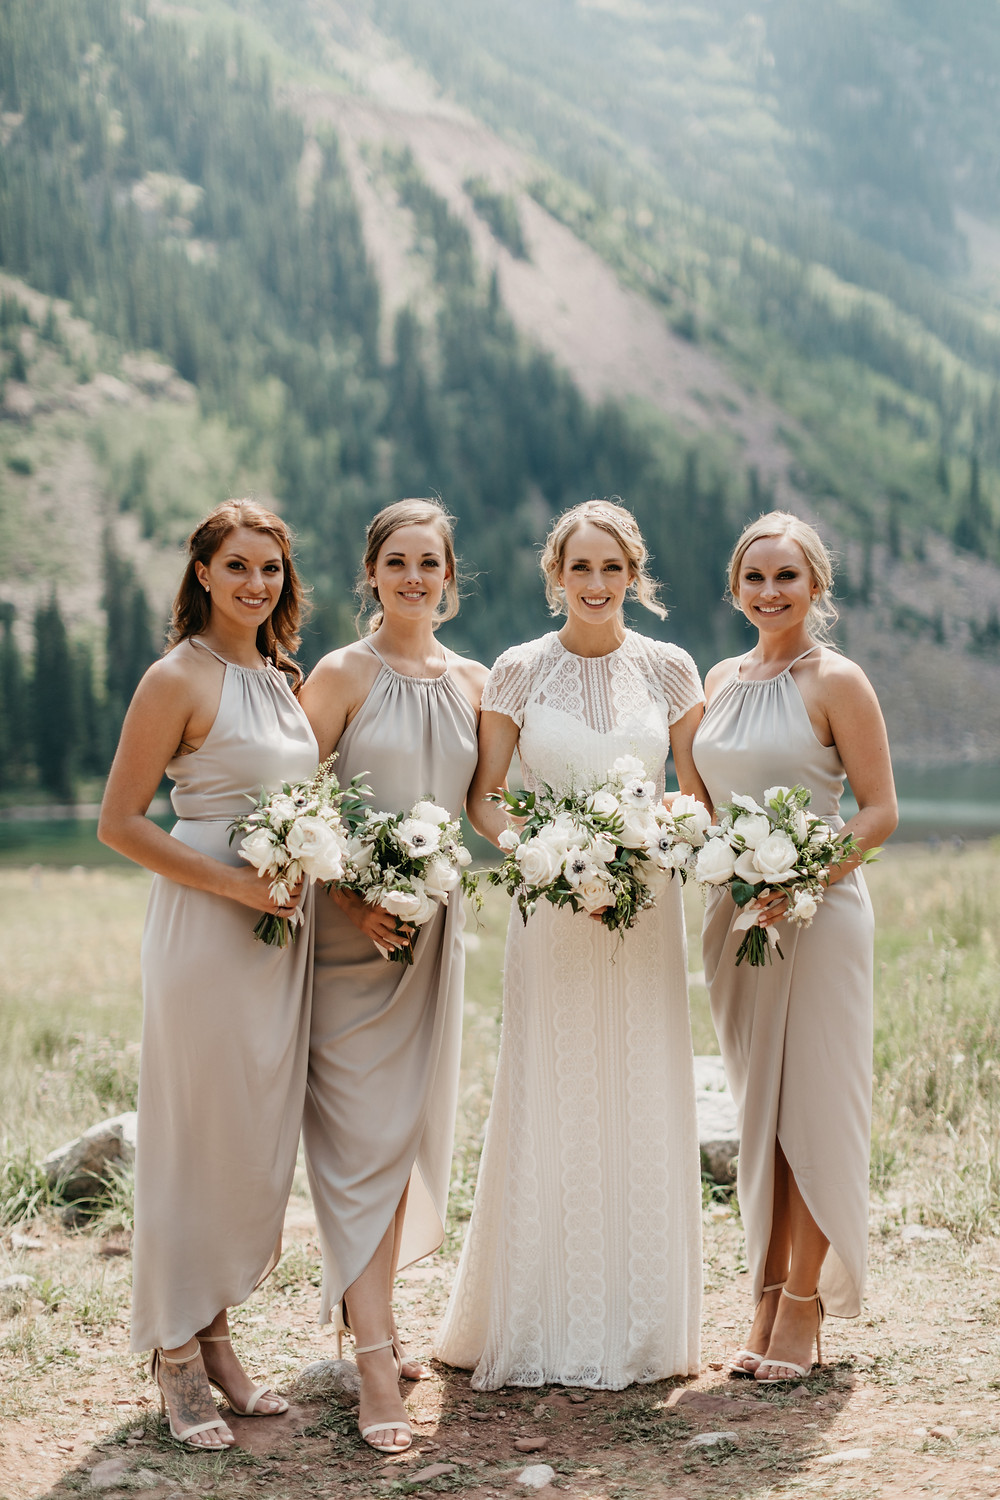 Mallory & David Aspen Elopement - Emma Lea Floral- Our Two Hearts Photography - Maroon Bells - Aspen Wedding - Denver Colorado Fine Art Floral Design - Luxury Wedding and Event Florist - Anemone | Rose  | Astrantia | Hops | Jasmine | White, Ivory, Navy | Mountain Wedding | Organic | Bride | Bridal Party |